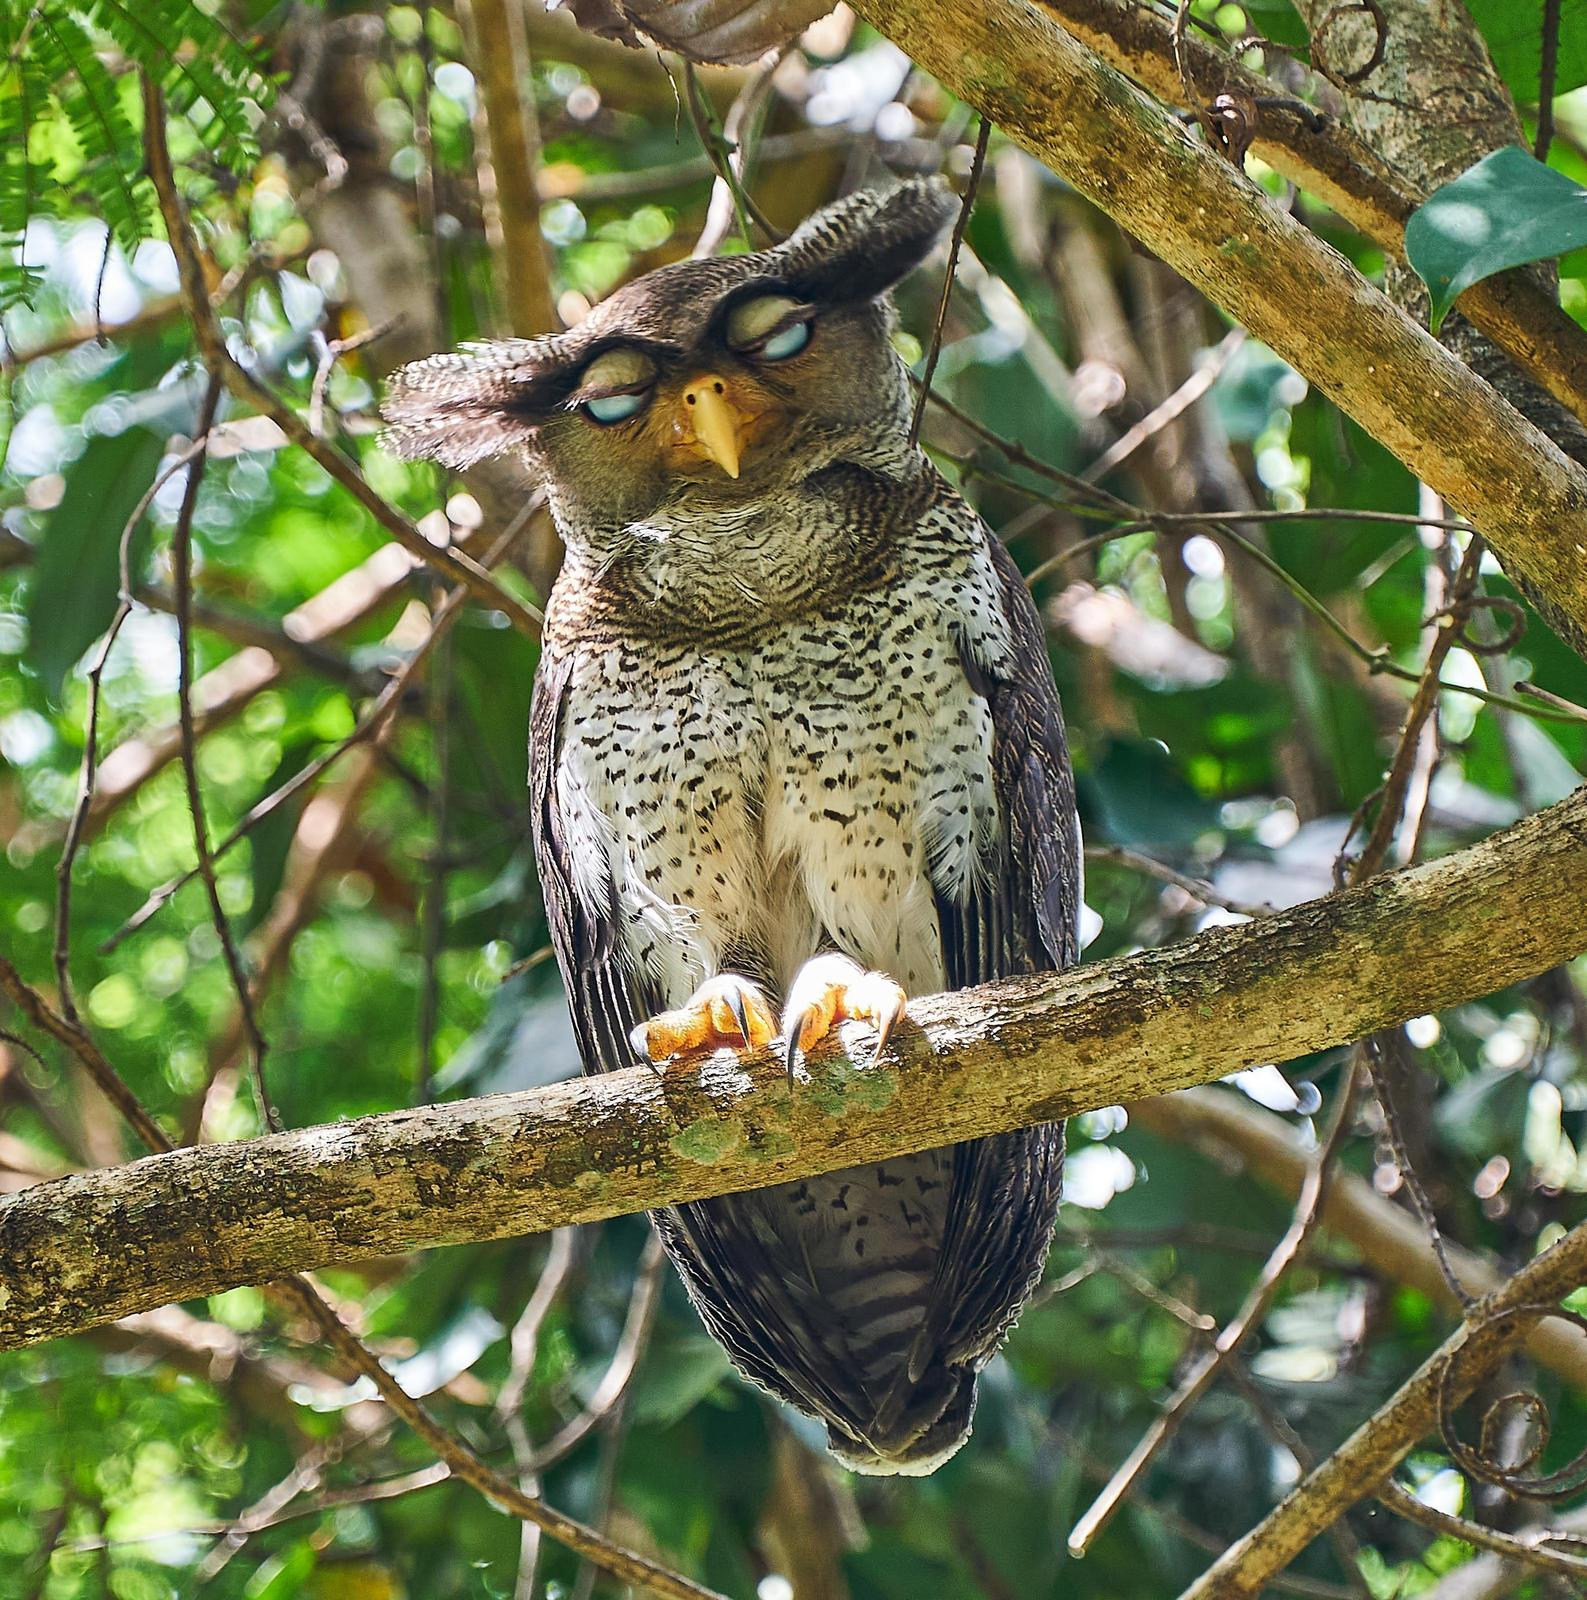 Barred Eagle-Owl Photo by Steven Cheong